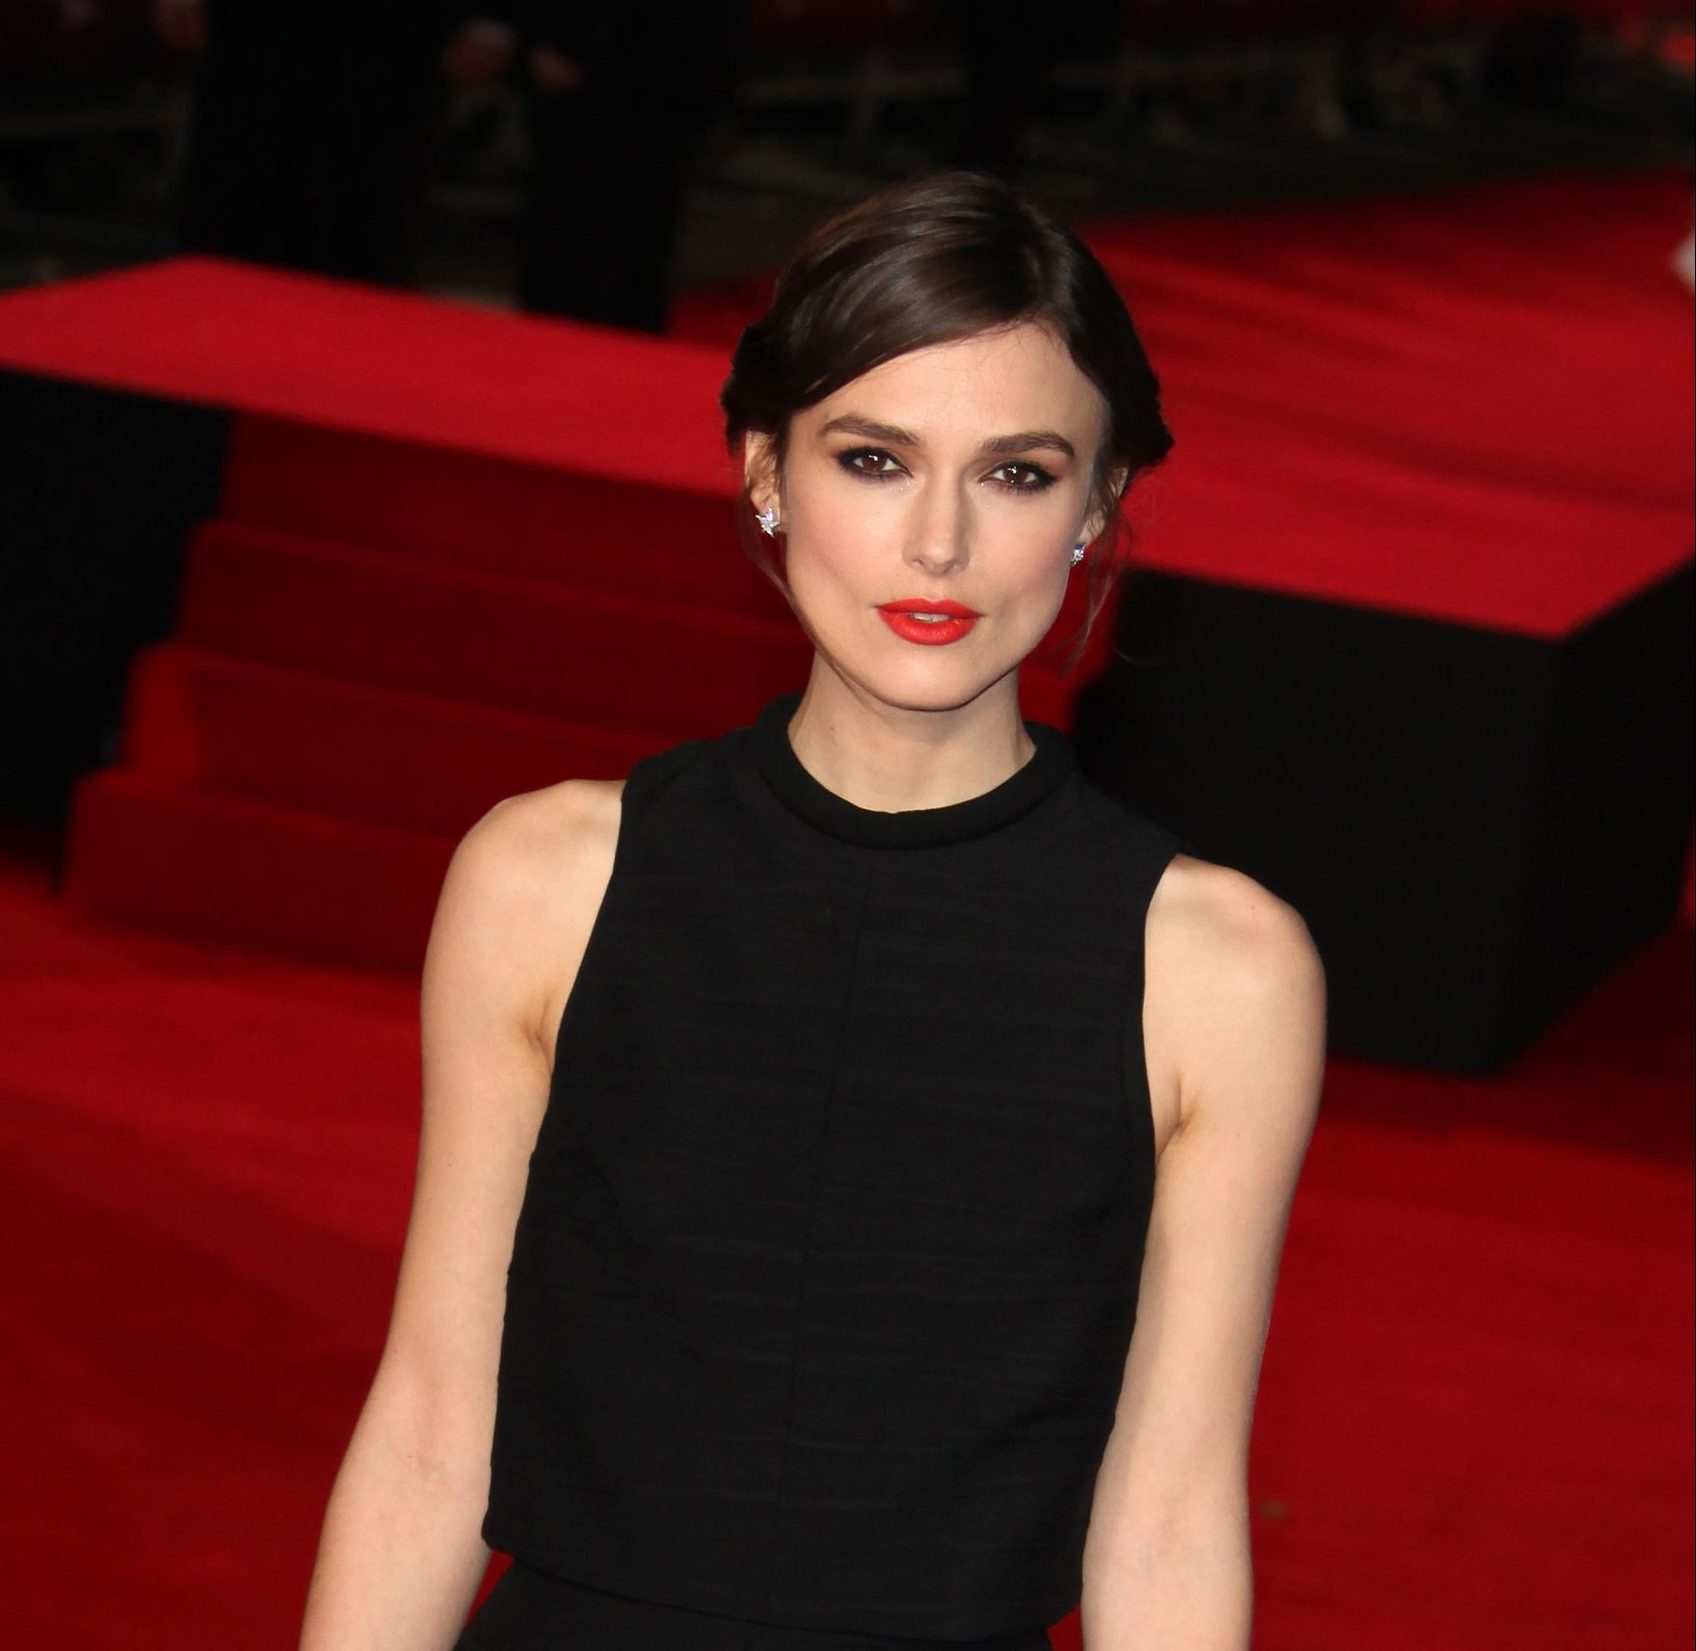 Keira Knightley attends a red carpet event. She wears a sleeveless black dress and bright red lipstick. Her hair is dark brown and tied back with a side part. She looks very elegant.